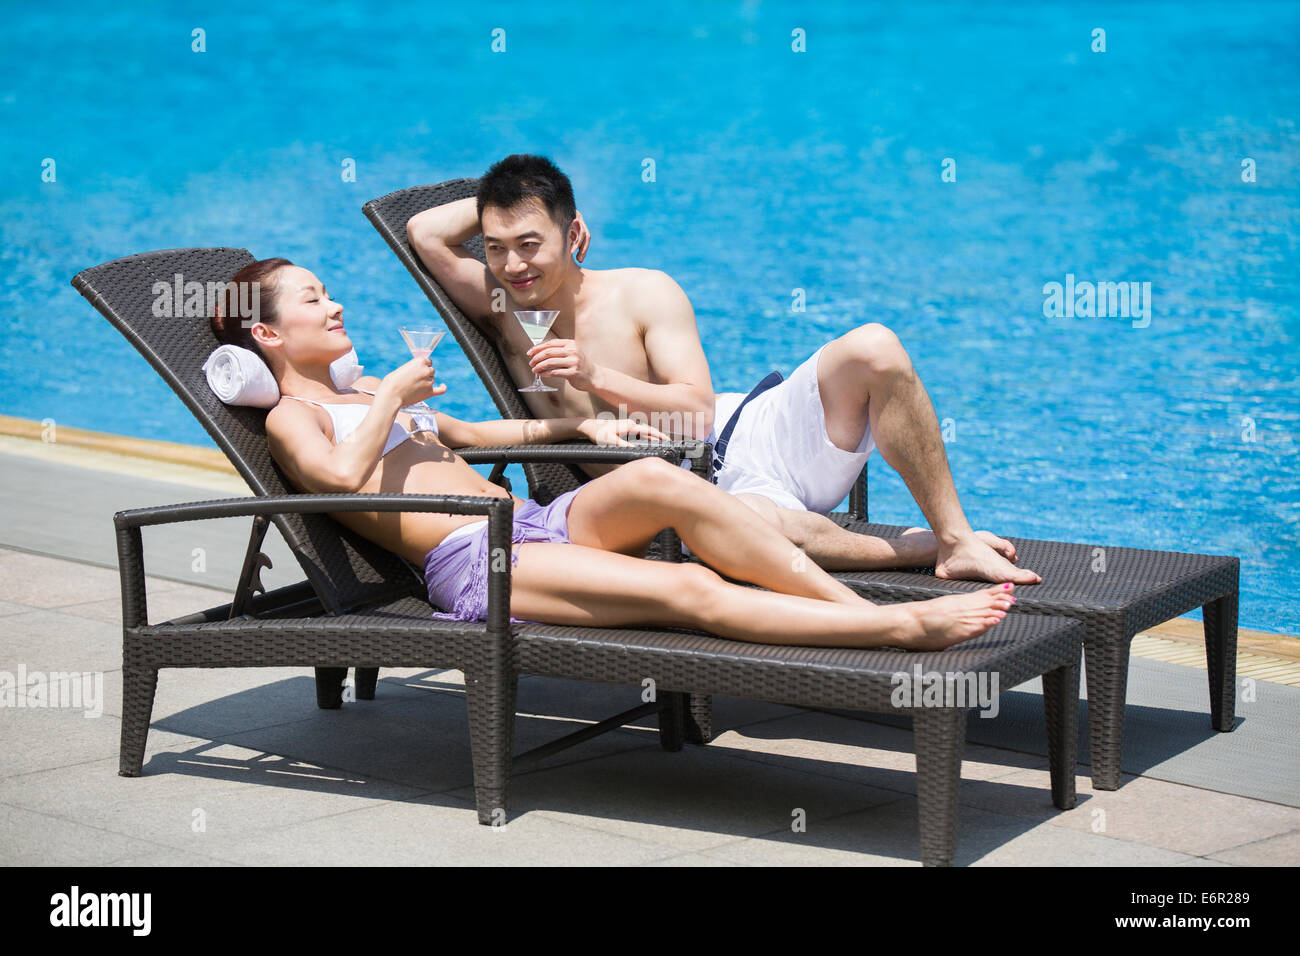 Young couple sunbathing at the poolside - Stock Image